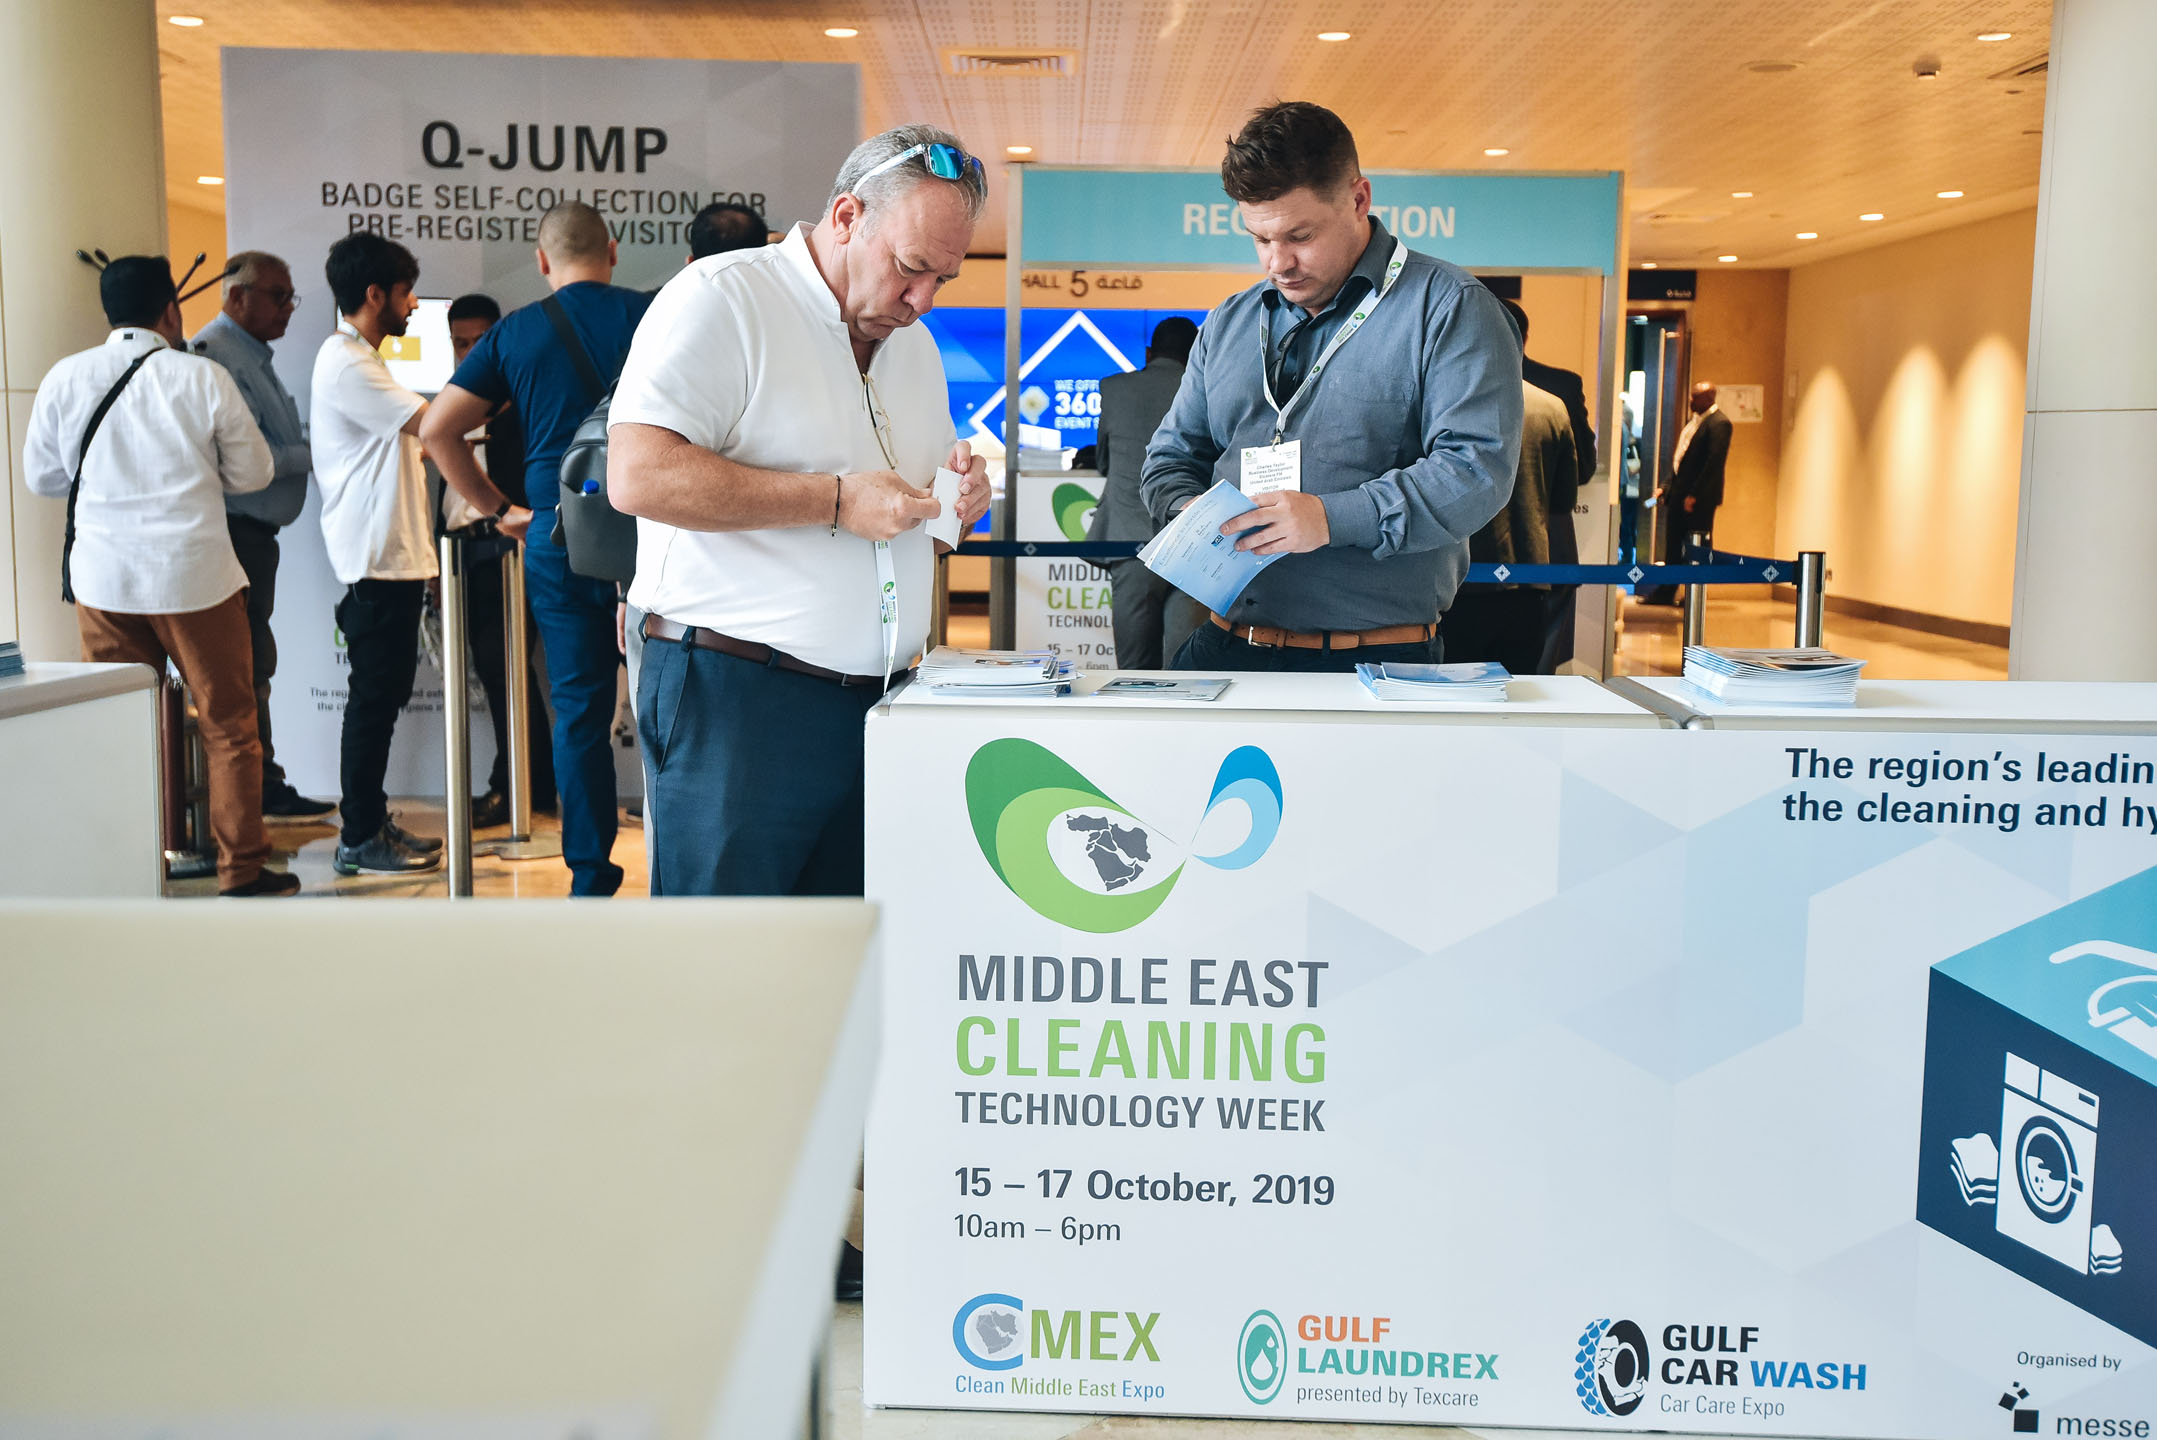 Information for visitors - Middle East Cleaning Technology Week